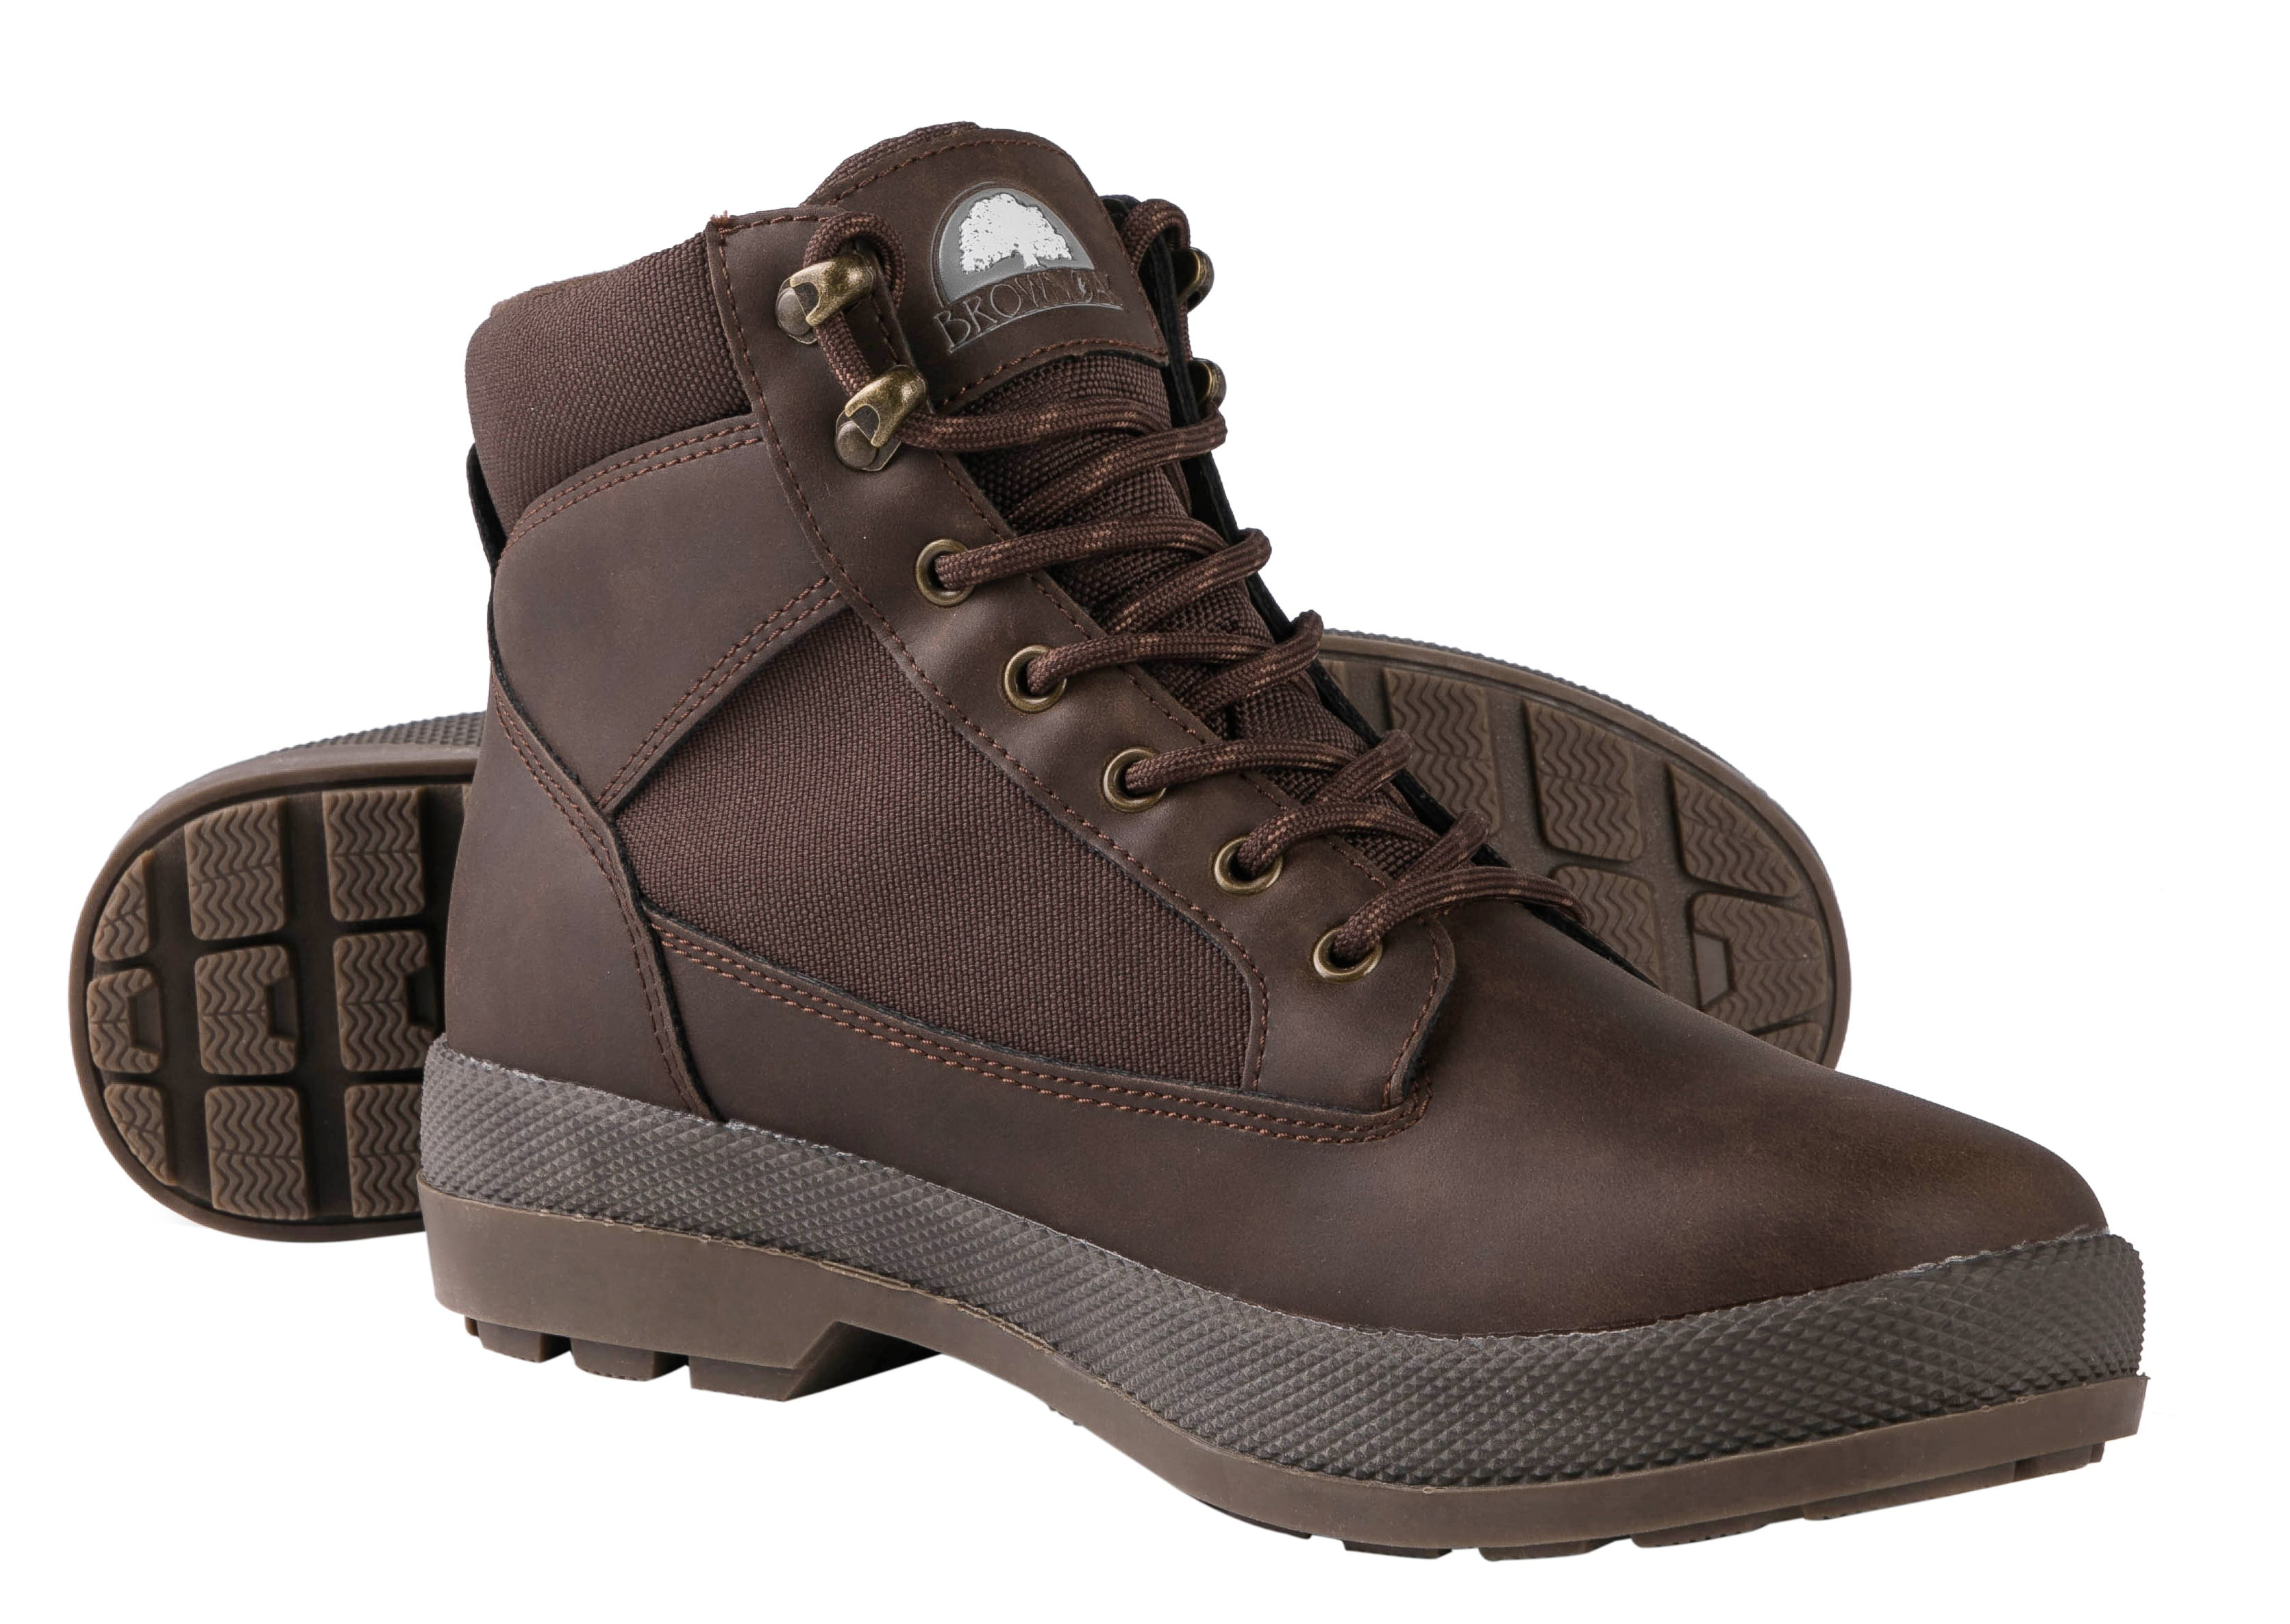 men's casual hiking boots